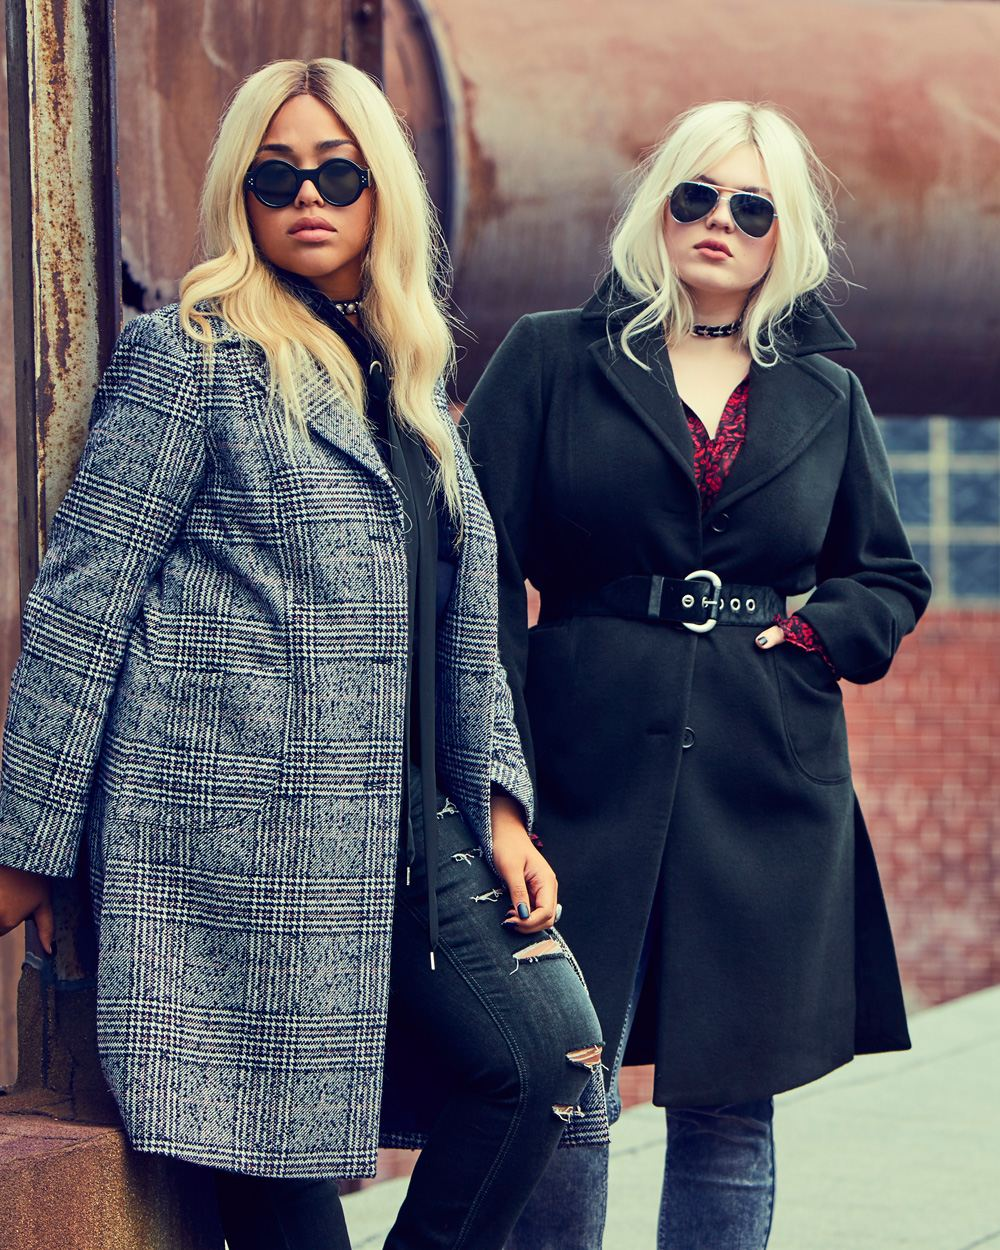 Two models in sunglasses and coats